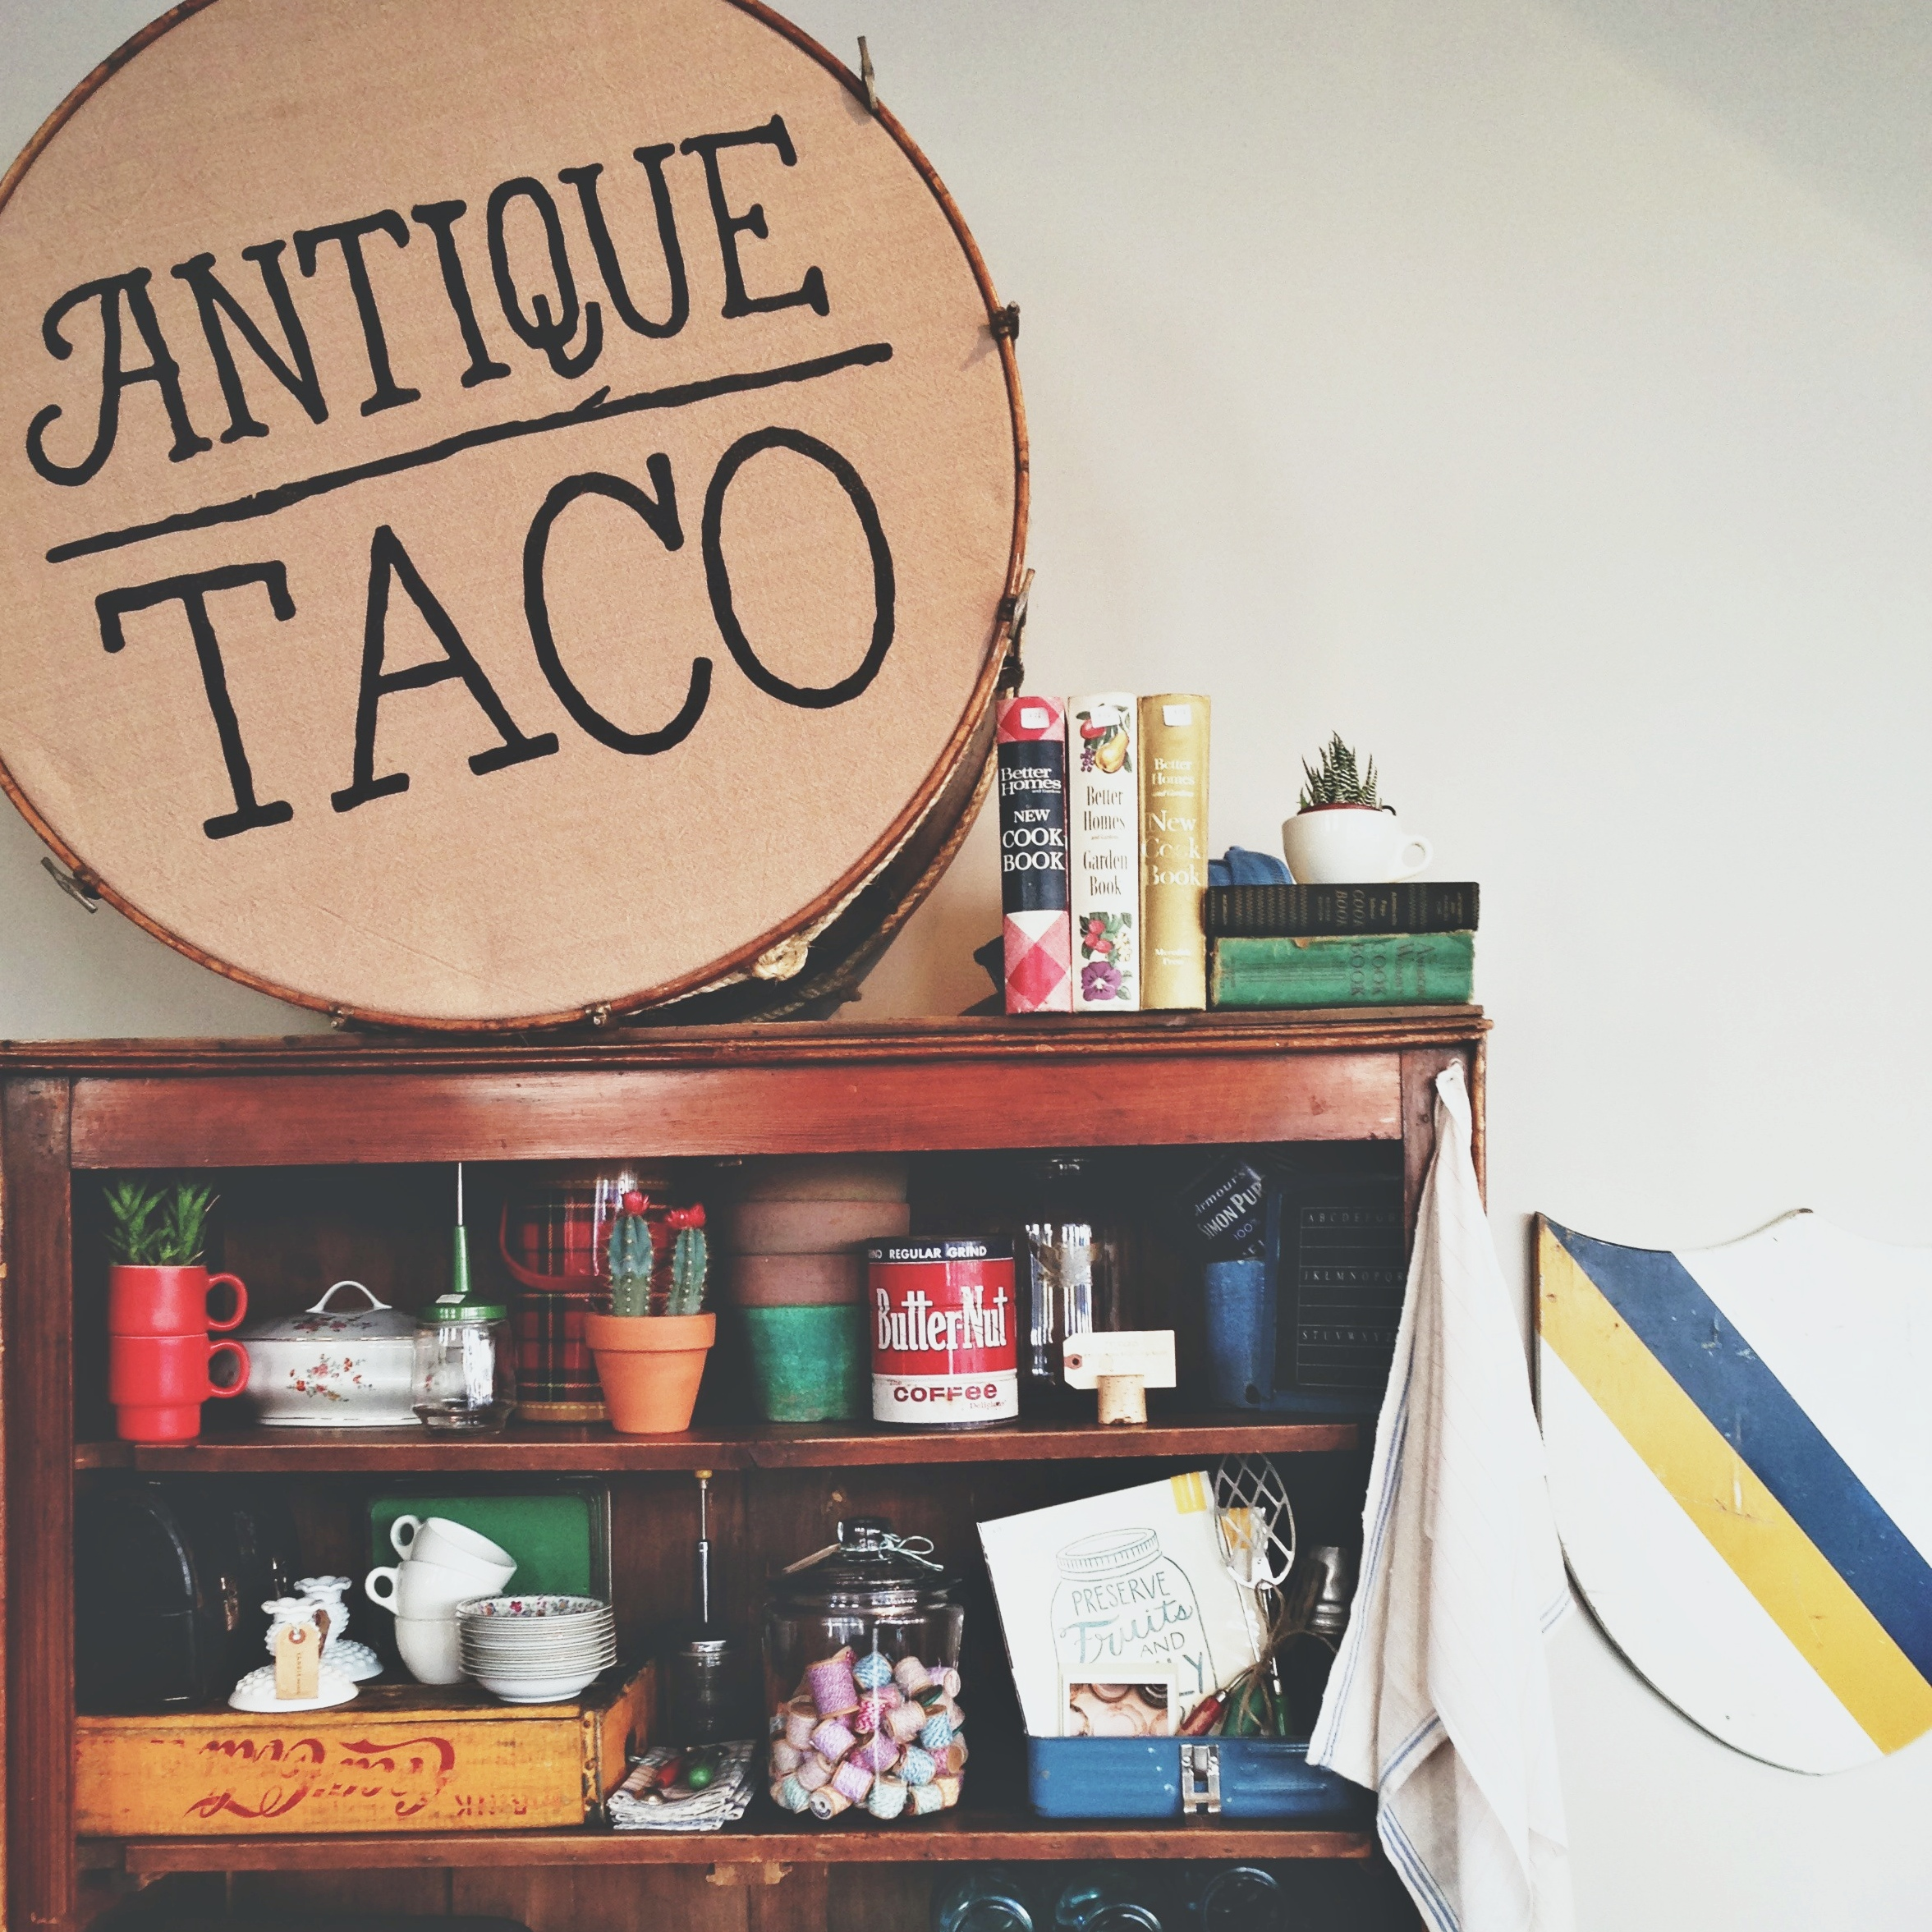 032 Antique Taco.JPG